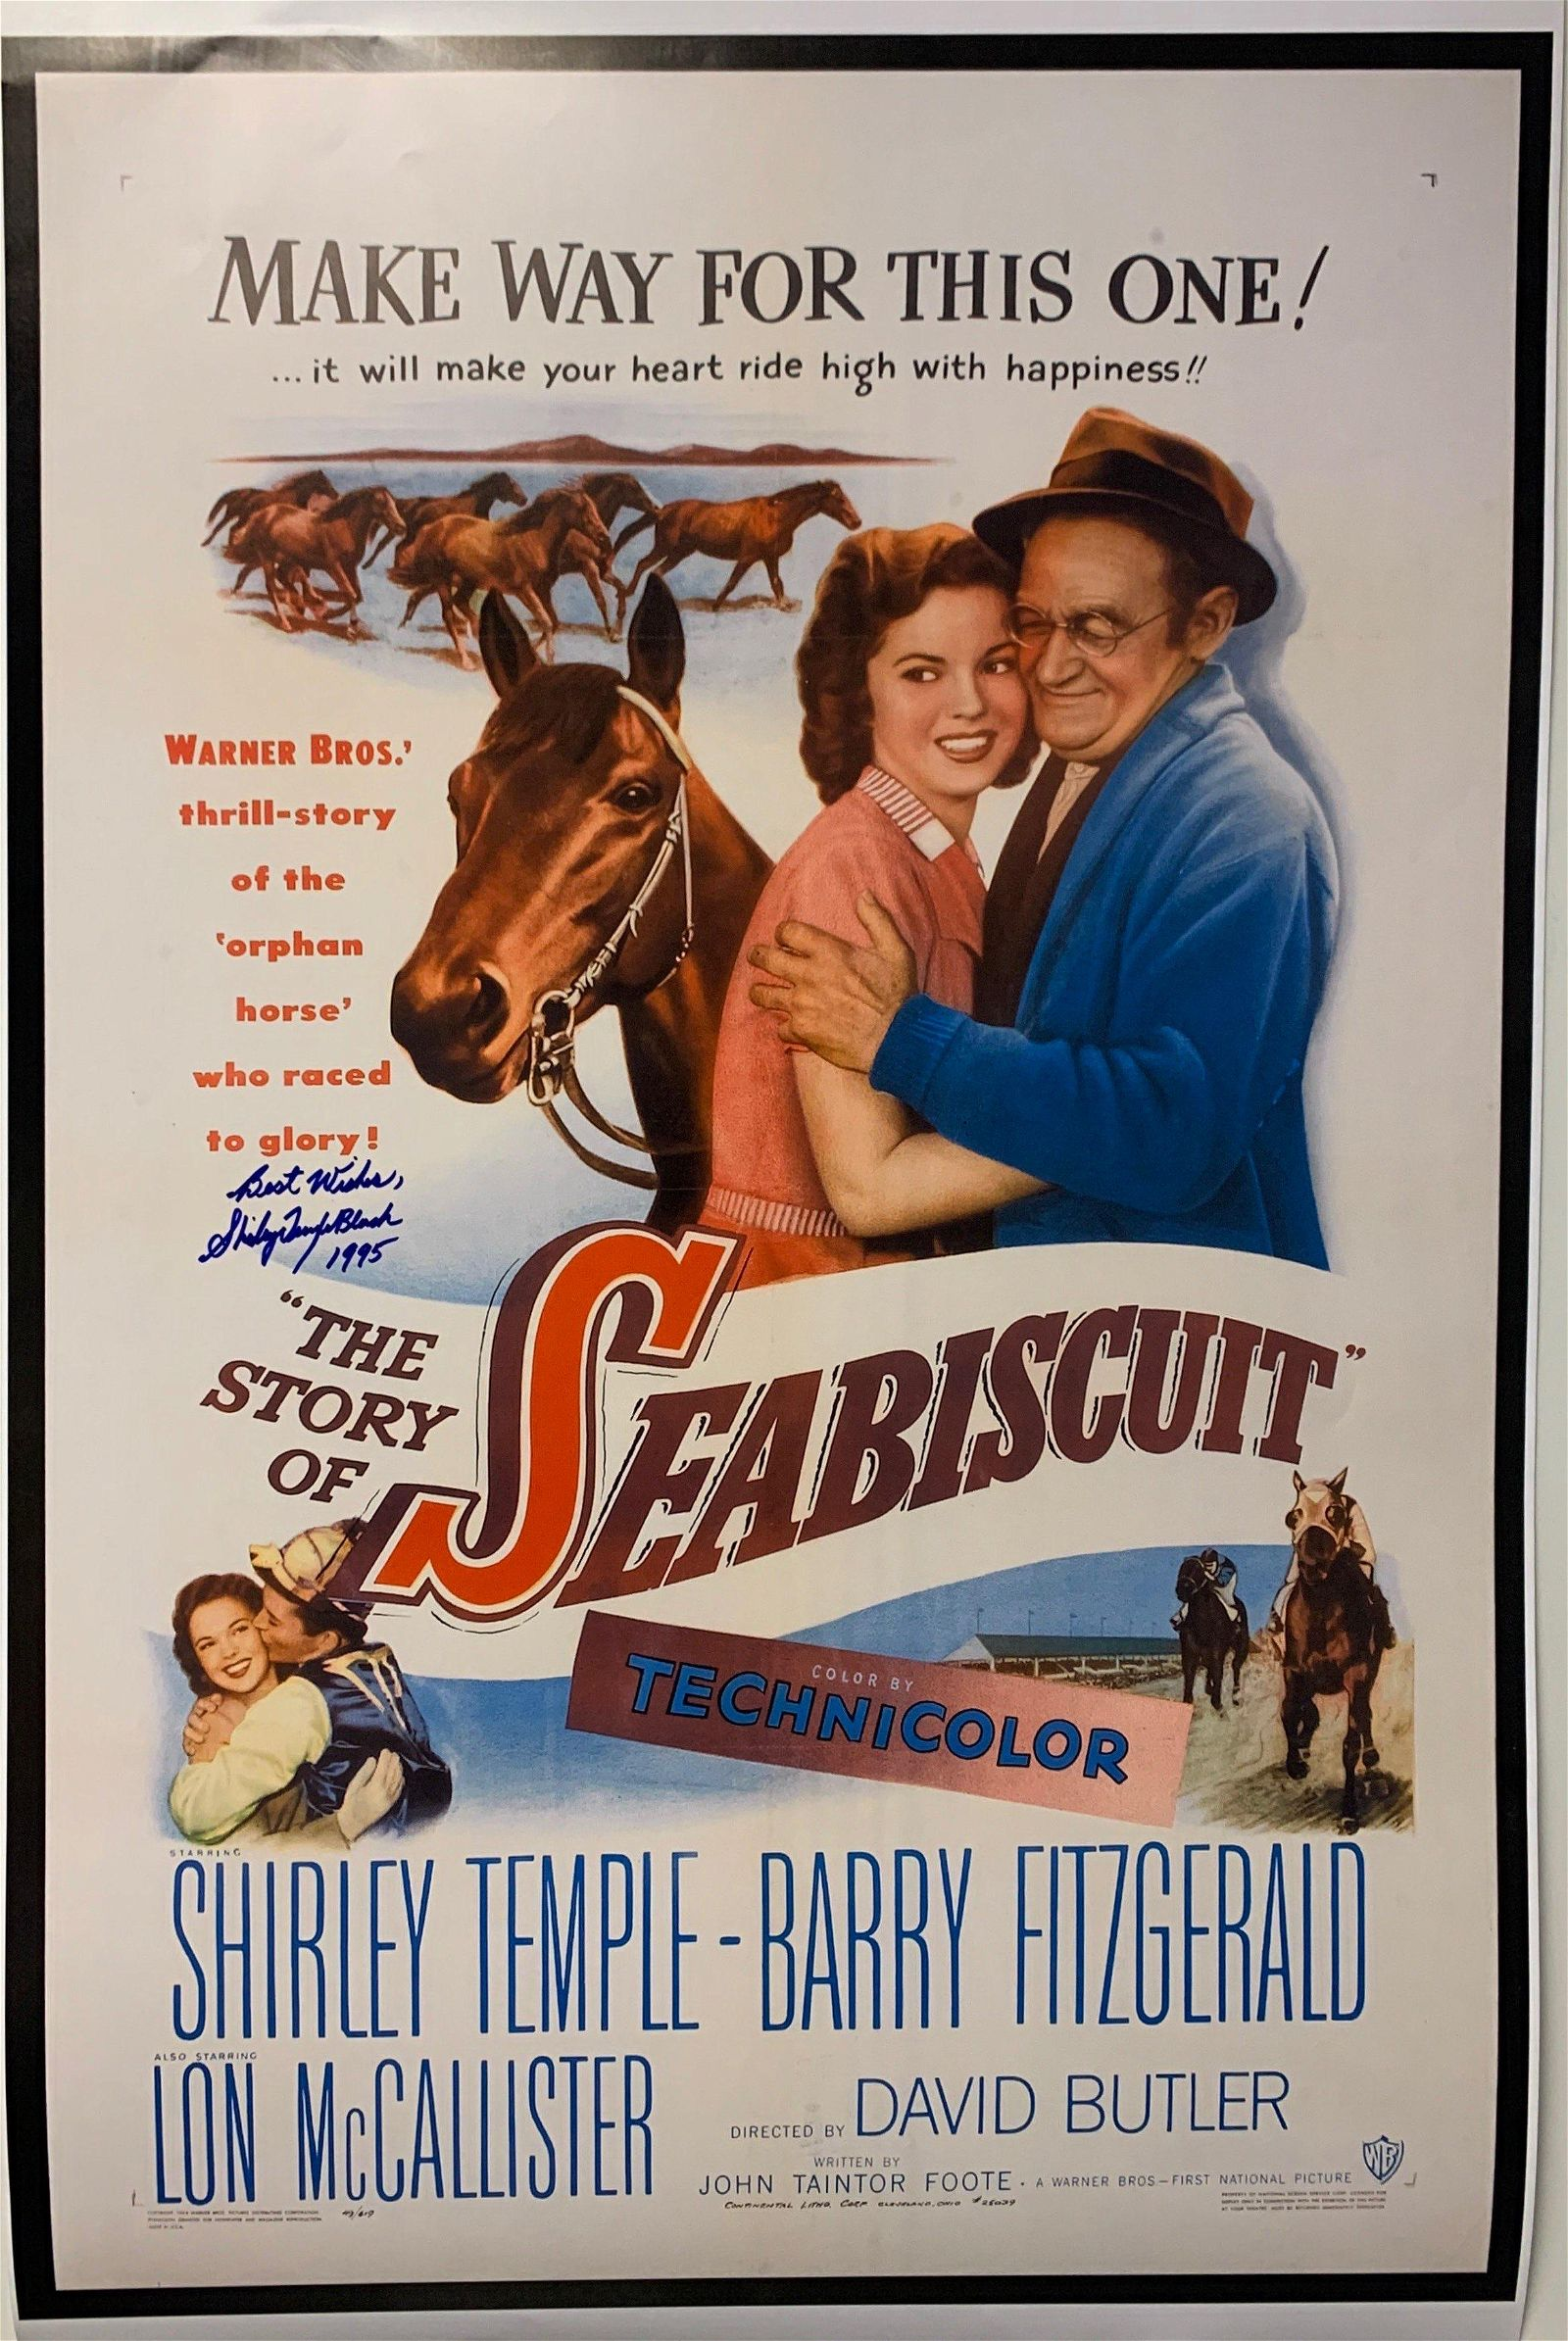 Shirley Temple Autograph Signed Seabiscuit Poster